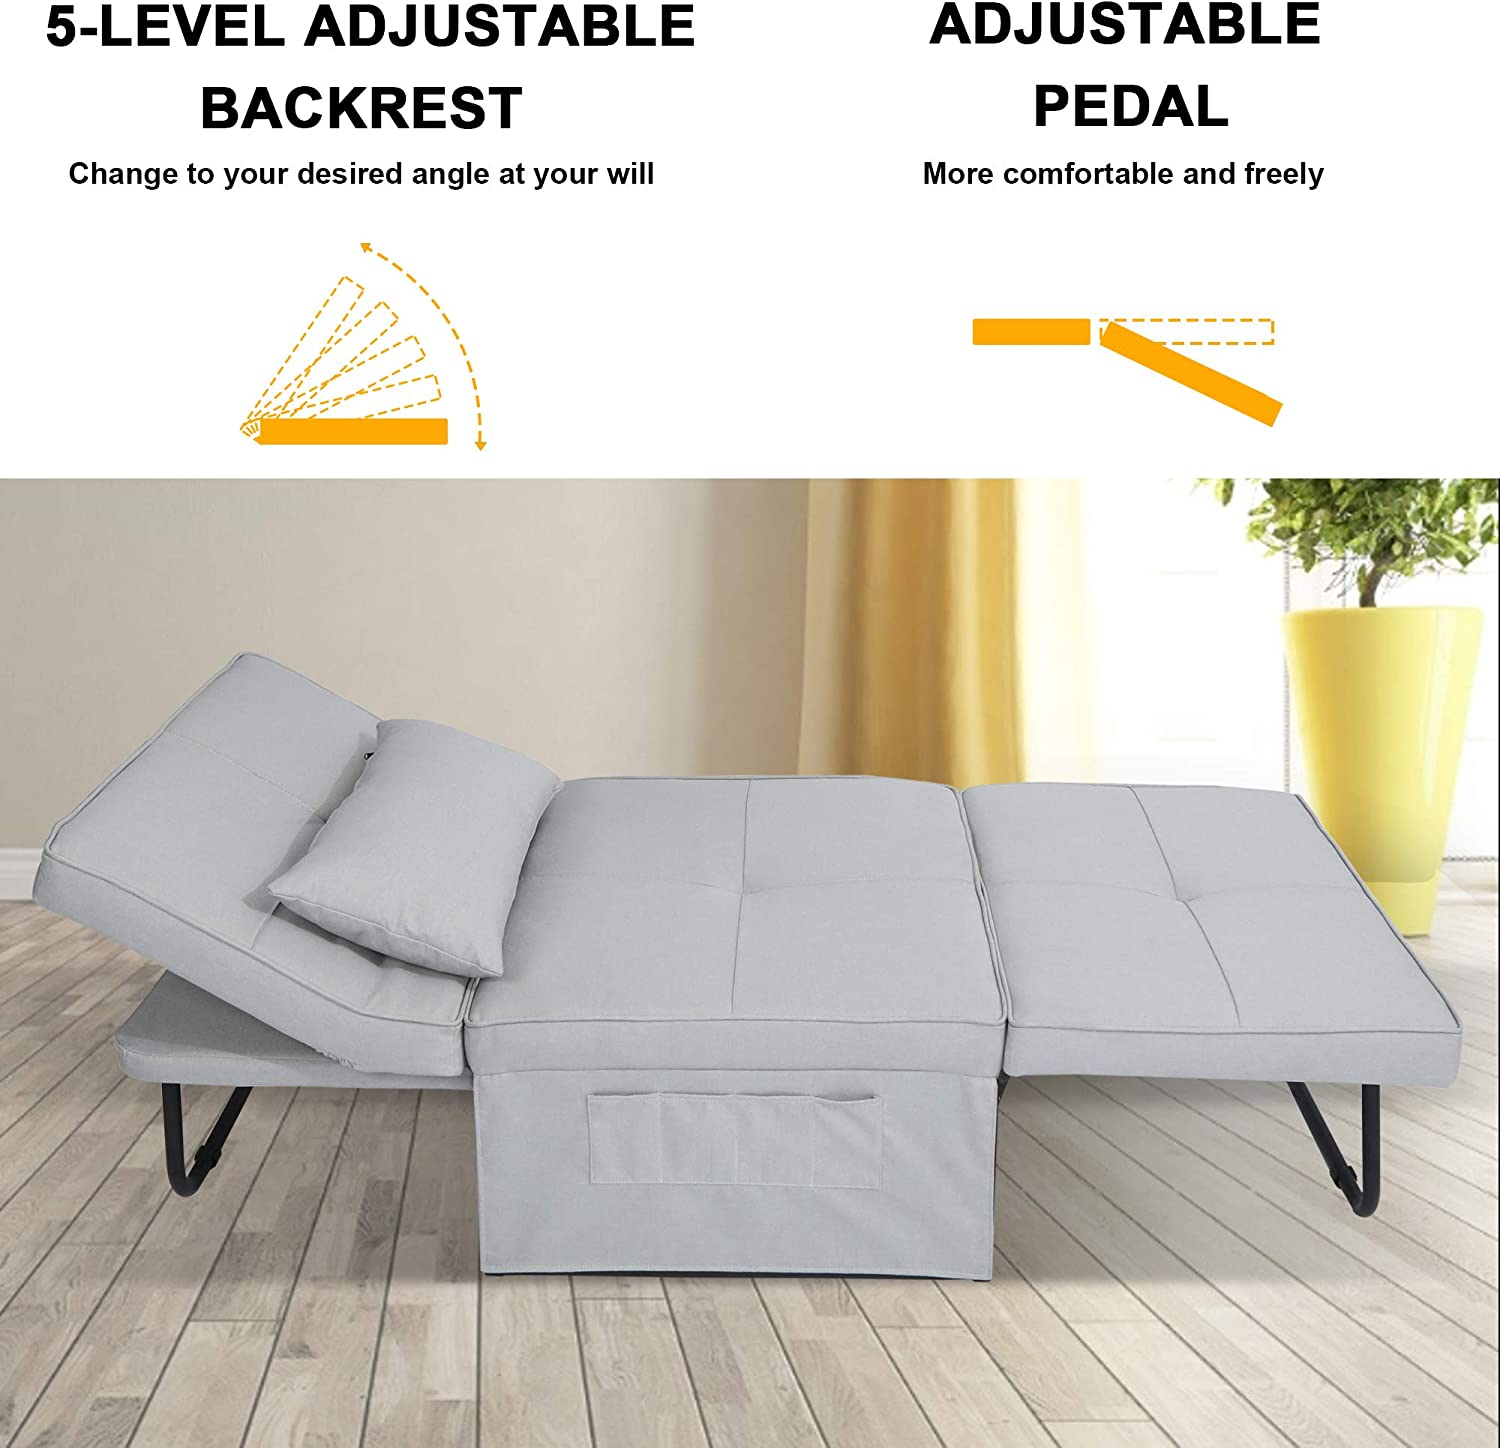 Convertible Chair Sleeper Bed,Sofa Chair Bed Sleeper,Folding Ottoman Sleeper Guest Bed,4 in 1 /Multi-Function Sofa Bed for Small Space,Easy to Adjust from Ottoman to Chair to Chaise to Bed,Light Grey